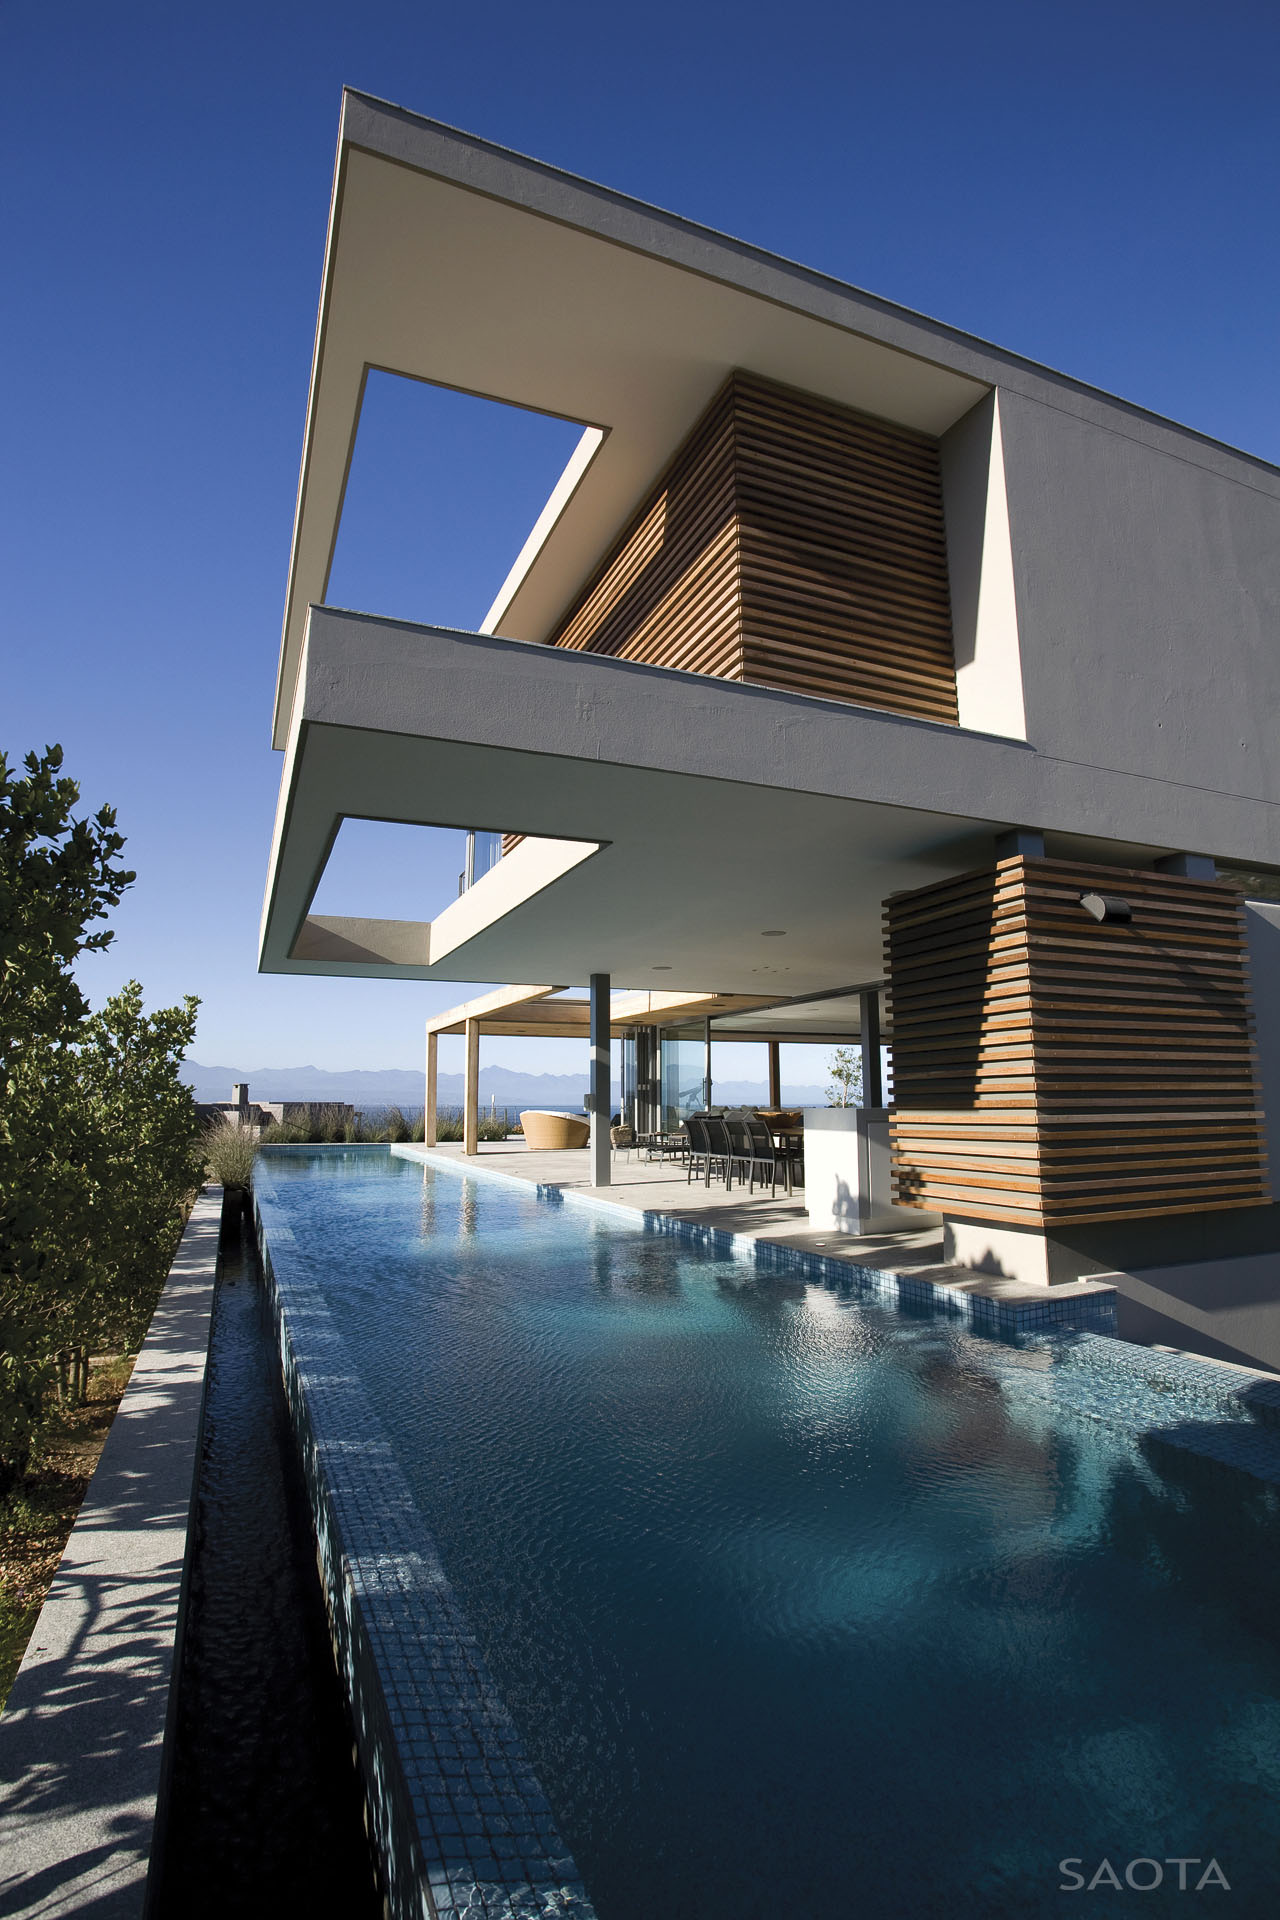 beachfront south africa contemporary architecture interior saota idesignarch natural